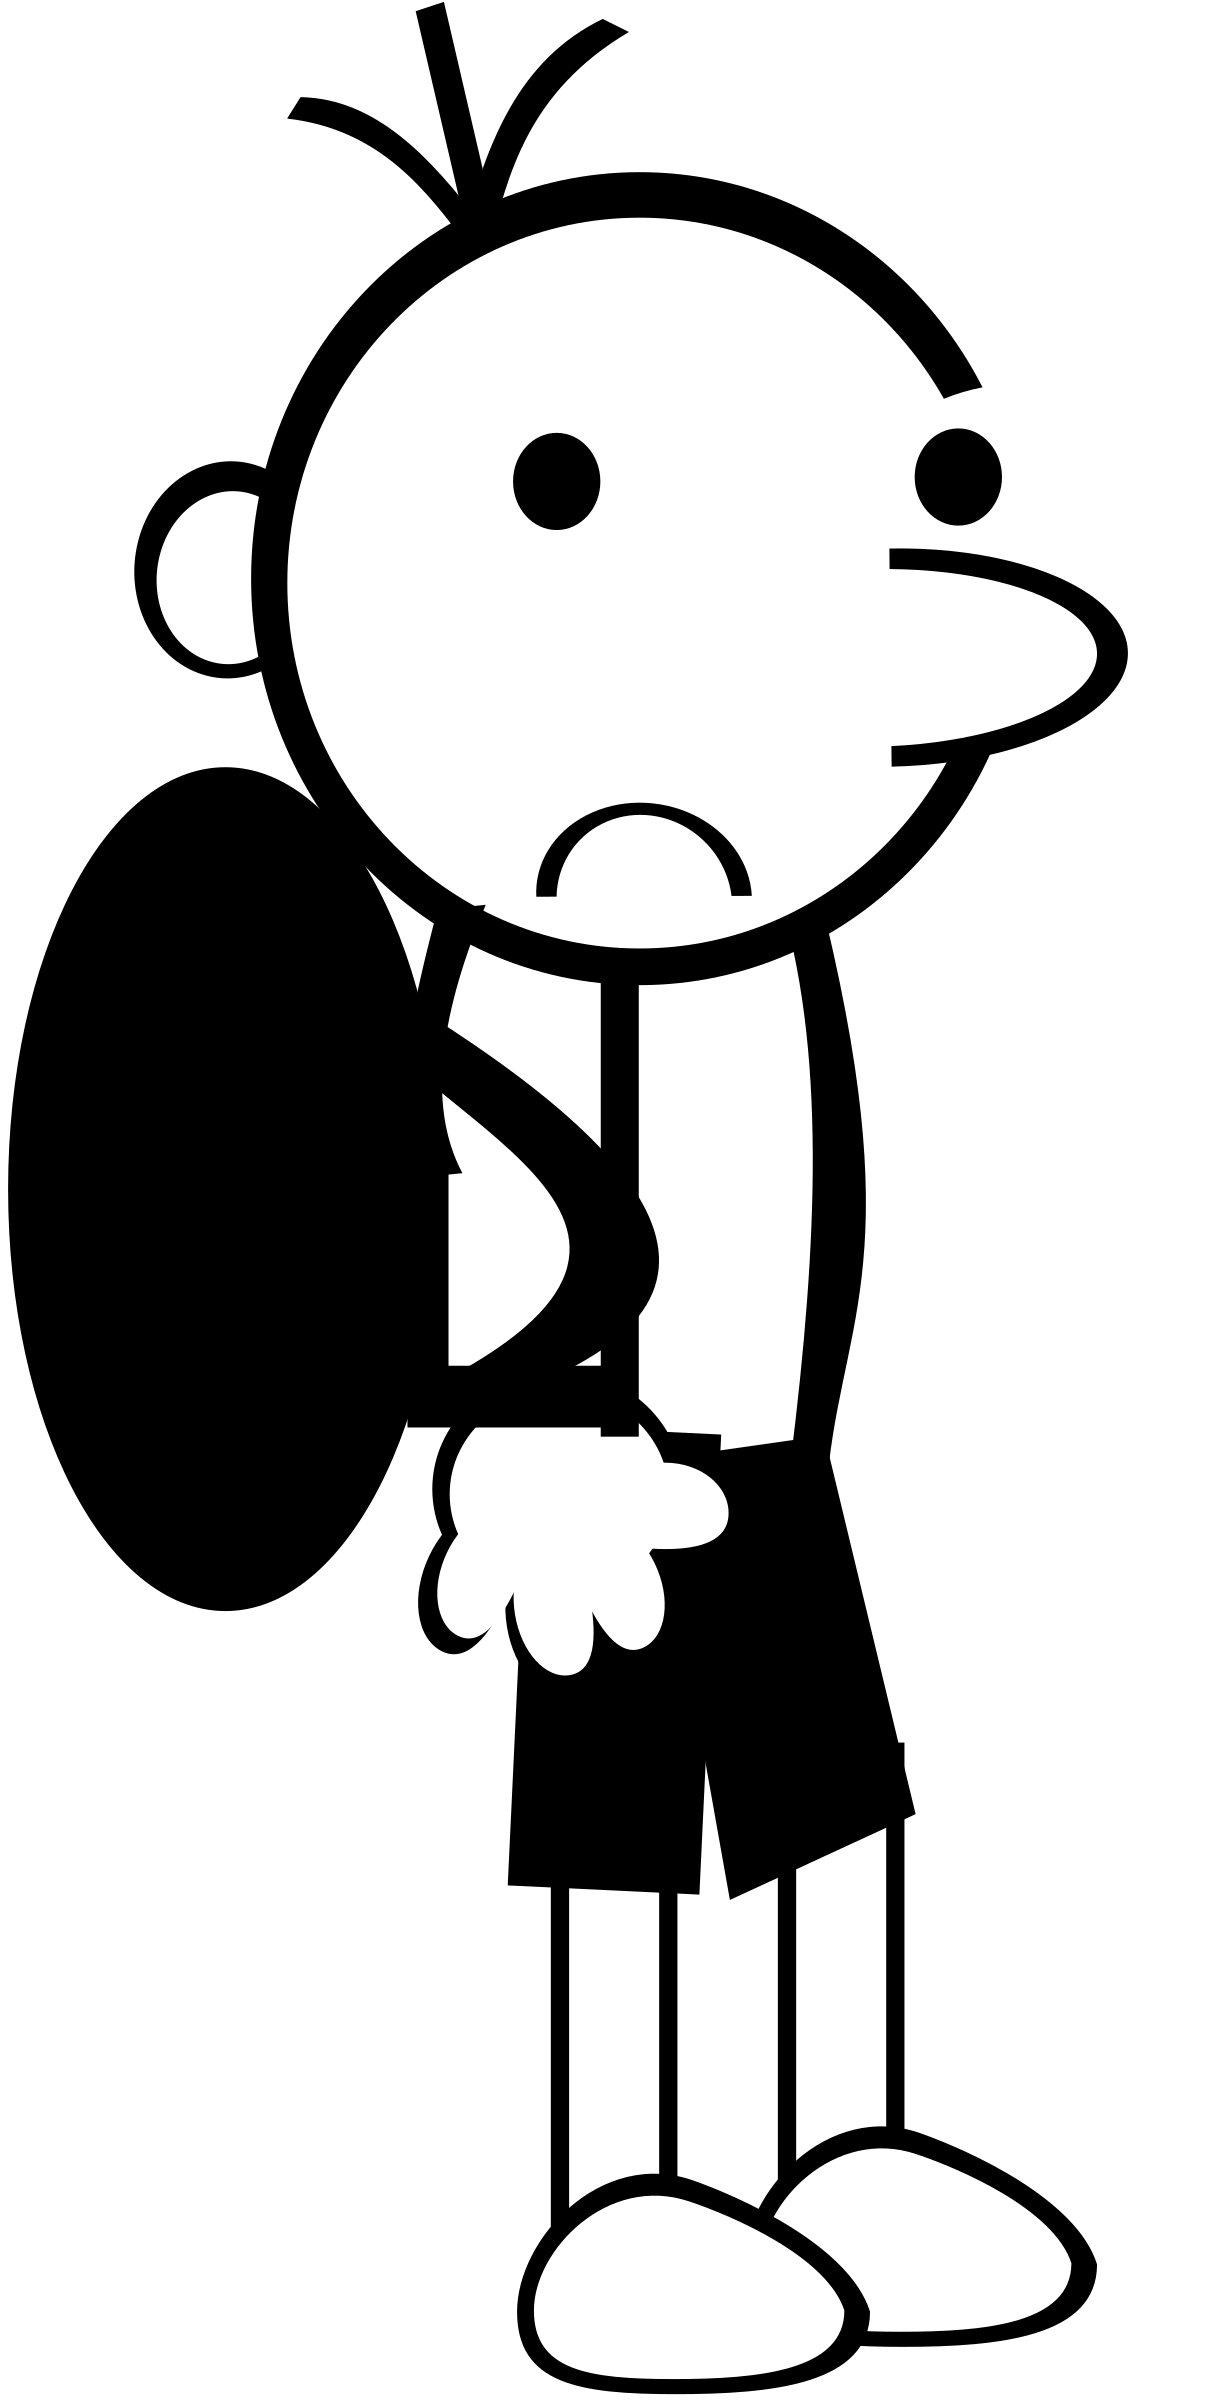 Wimpykid big image png. Student clipart stick figure